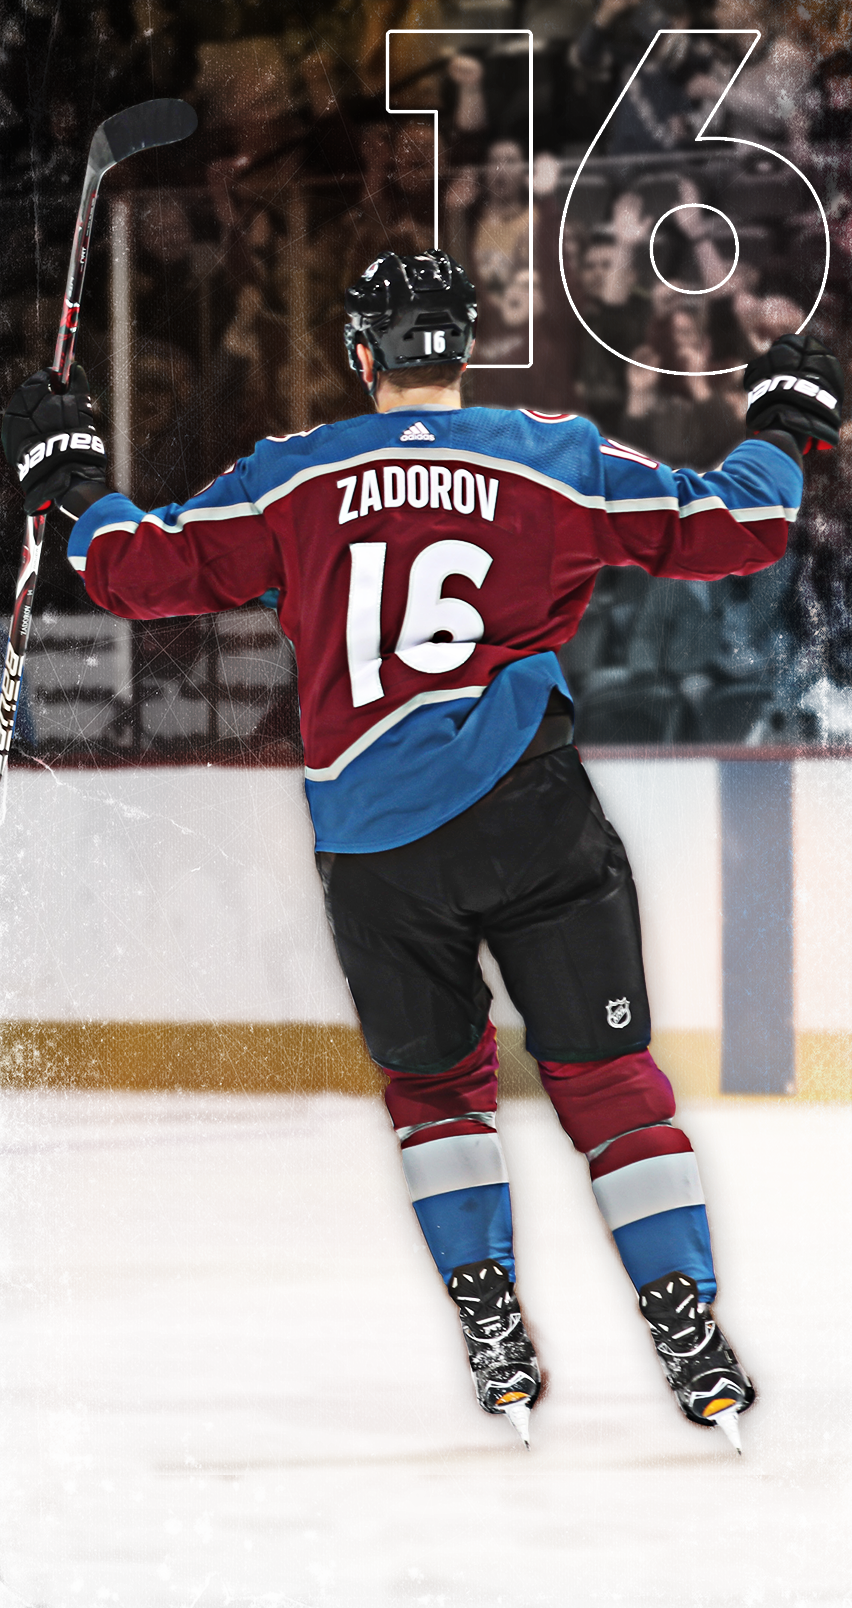 852x1608 - Colorado Avalanche Wallpapers 9